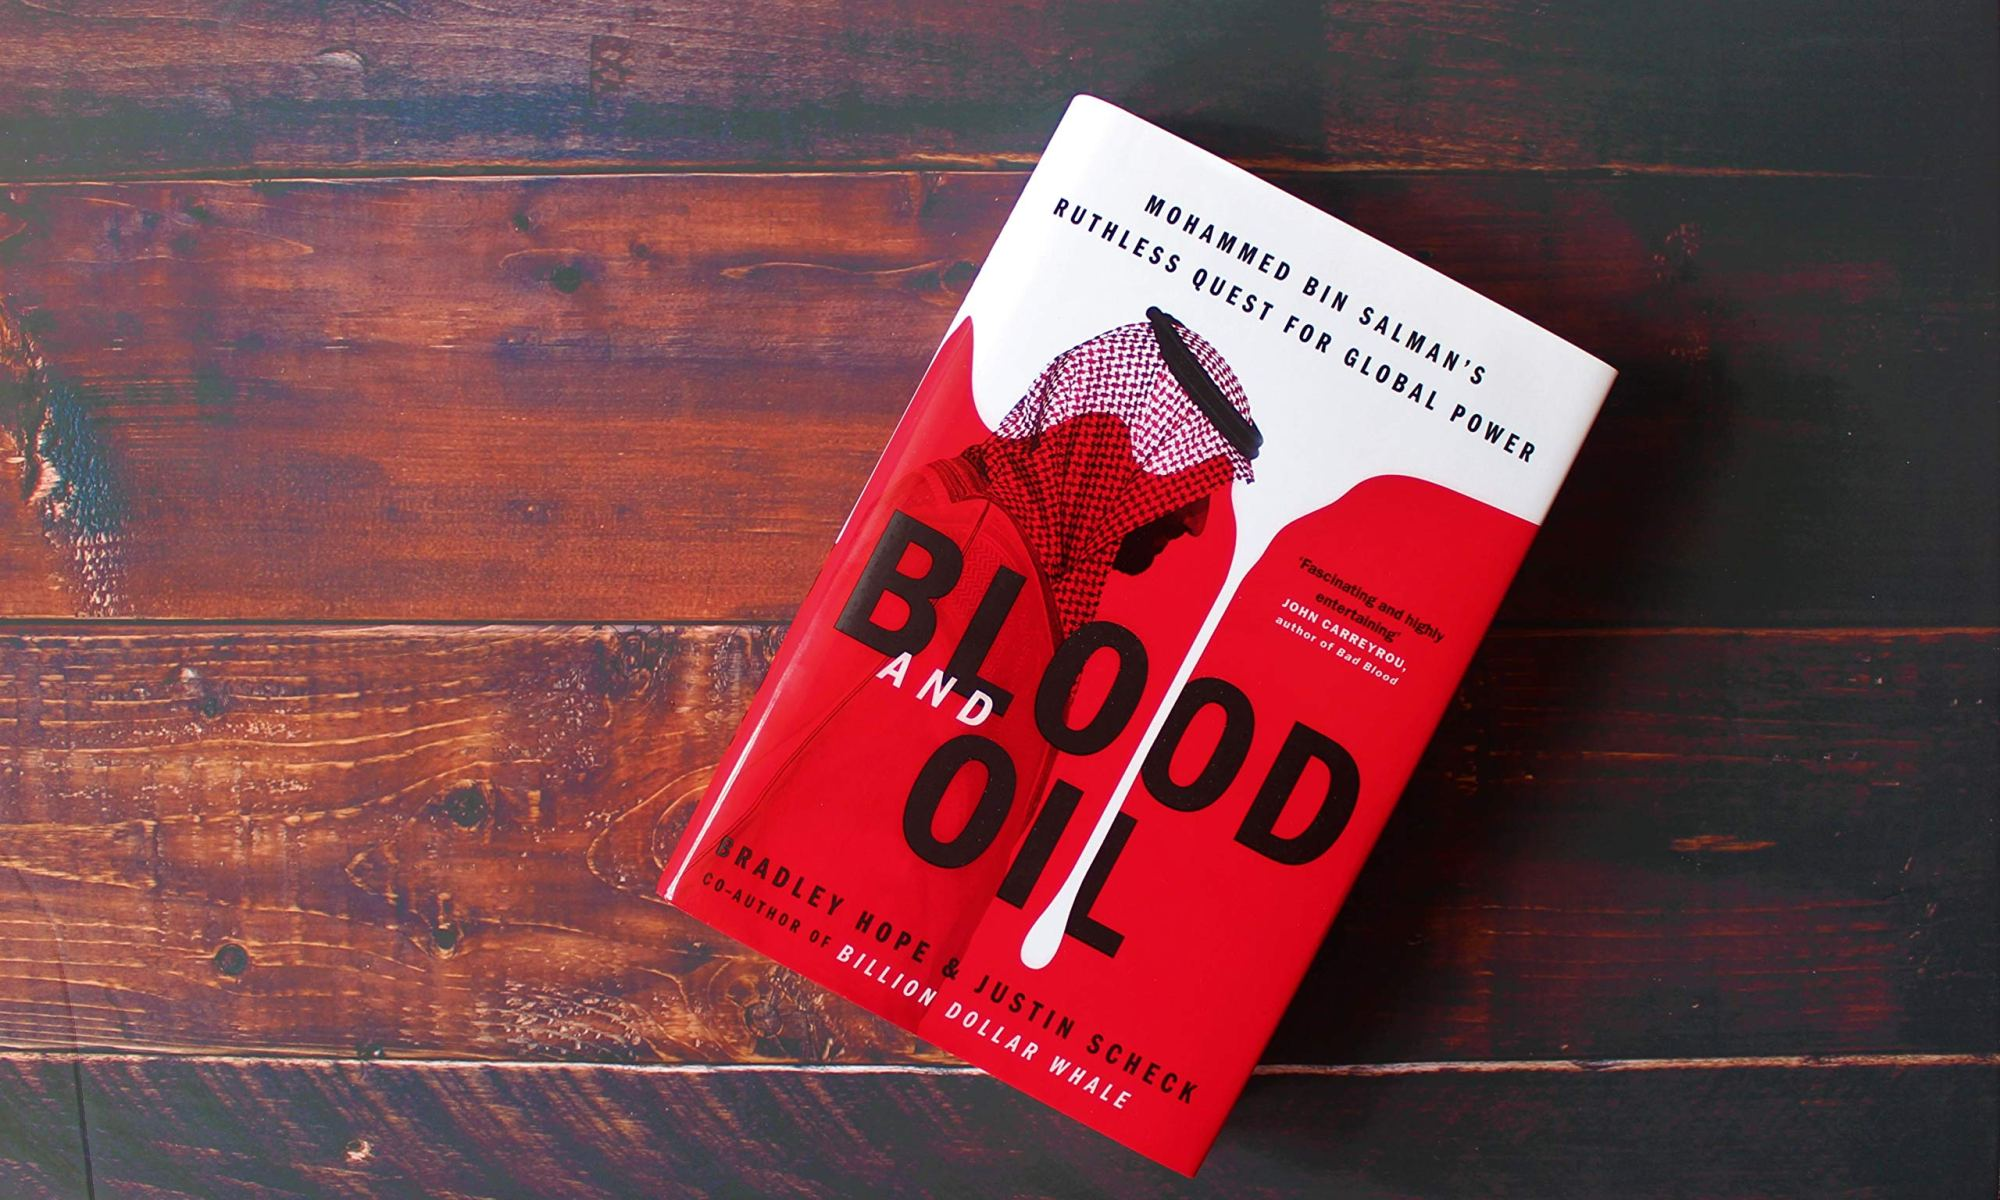 Blood and Oil book cover on hardwood floor.